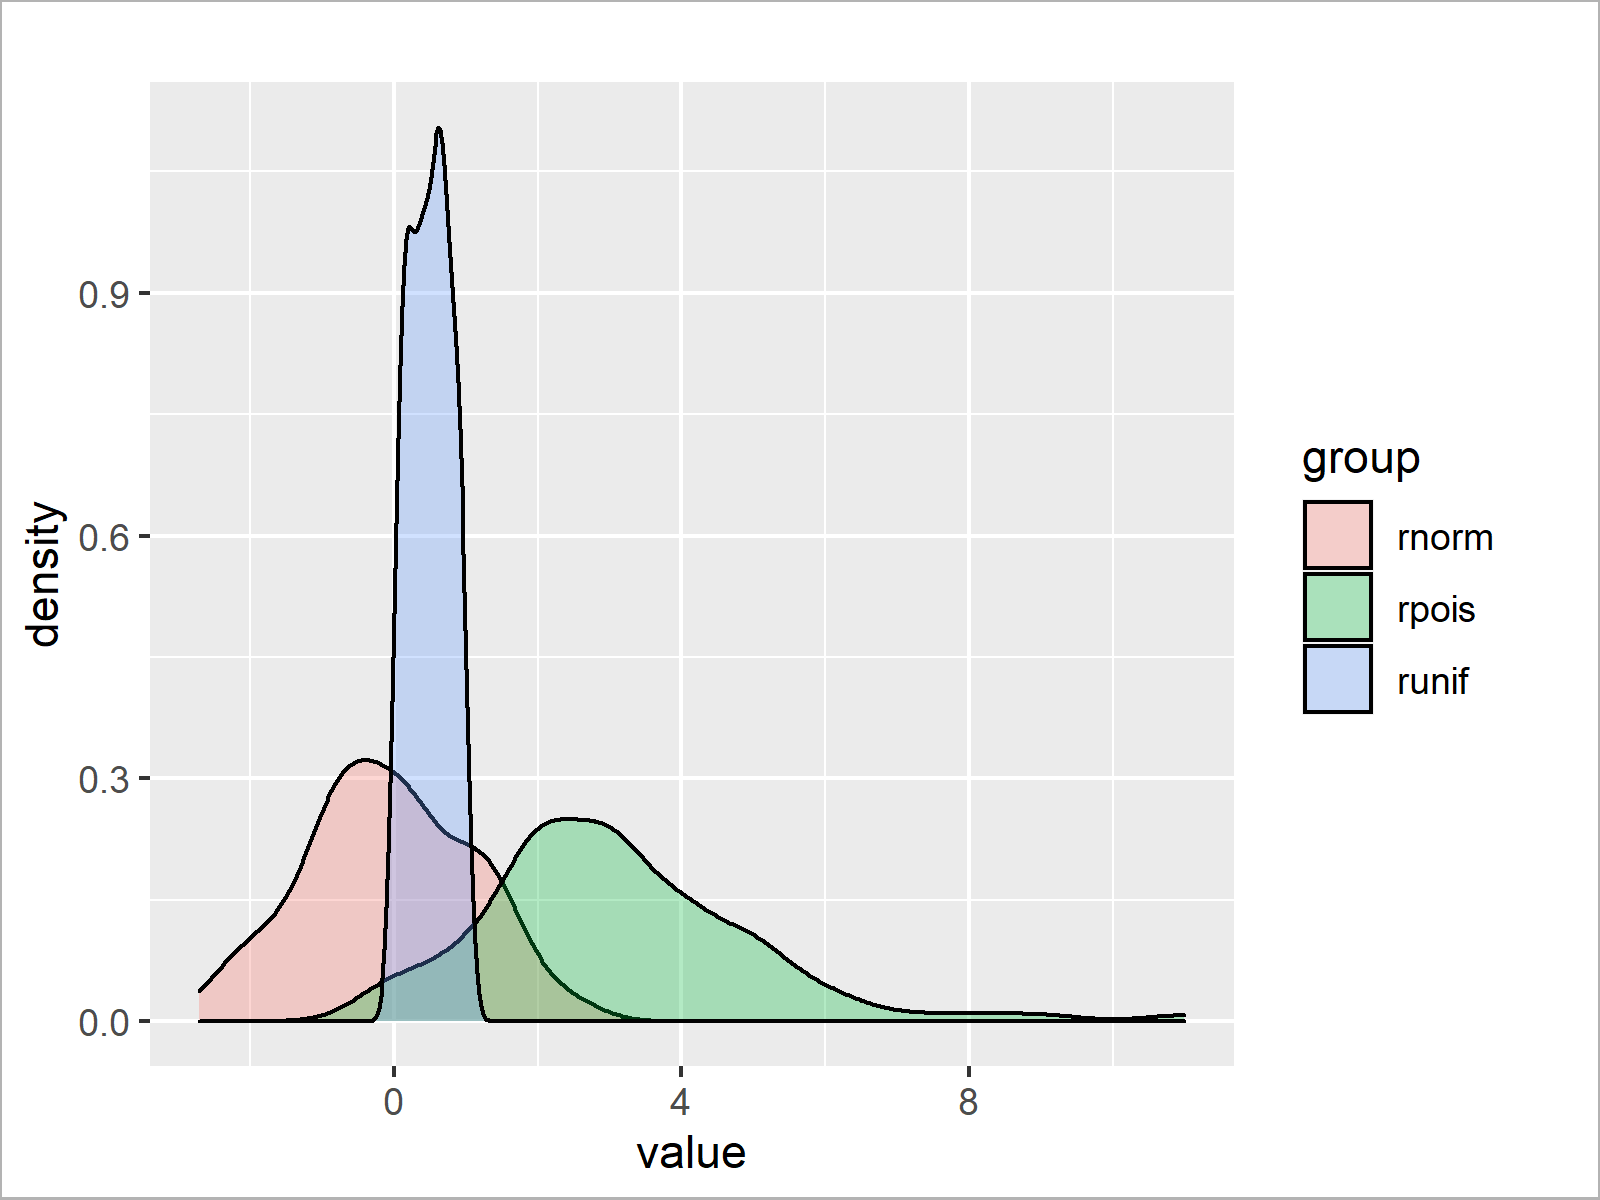 r graph figure 2 overlay ggplot2 density plots